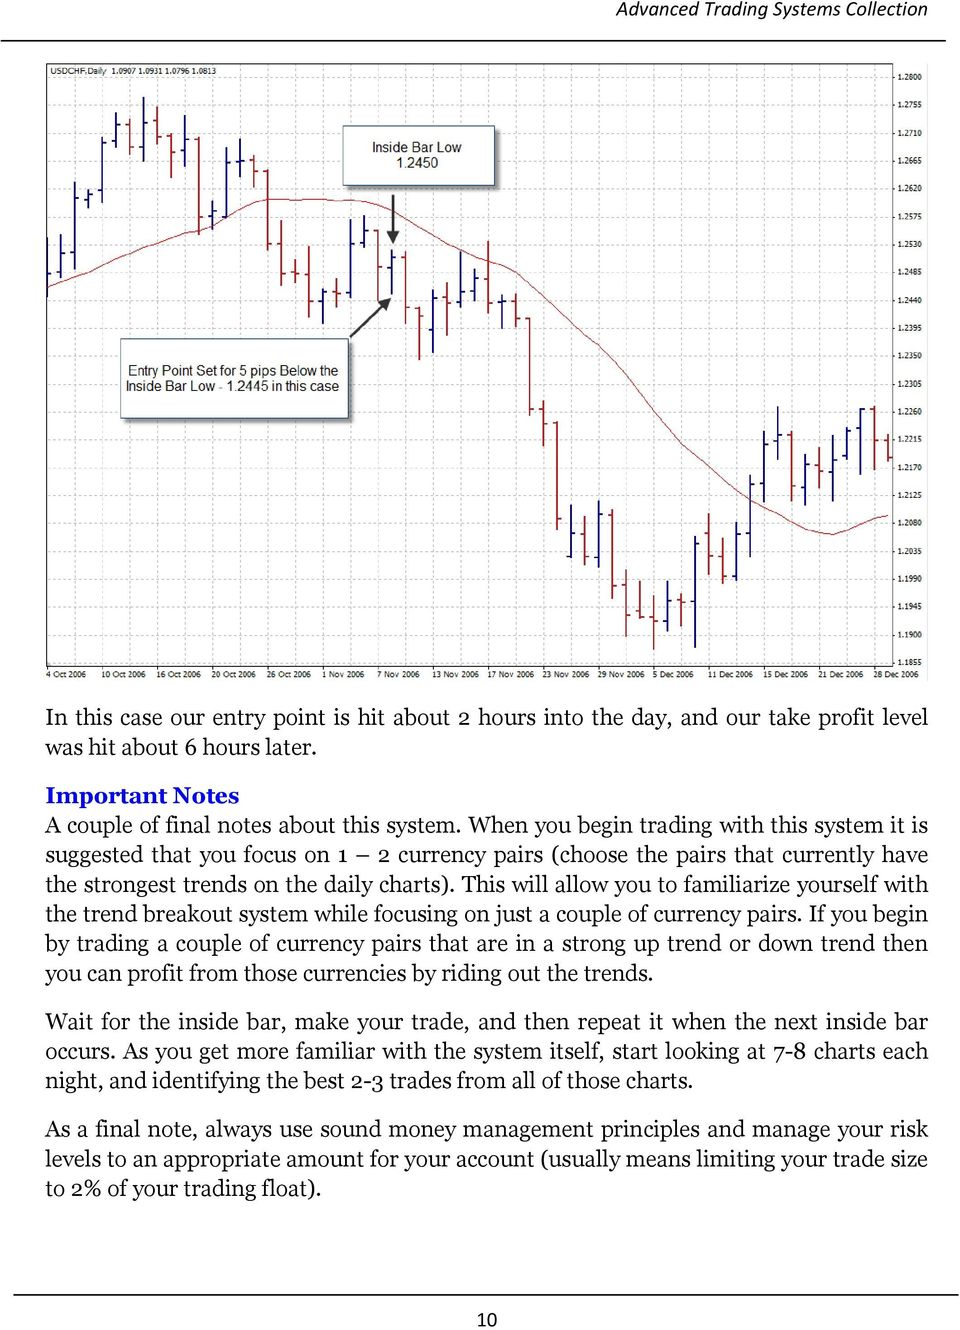 This will allow you to familiarize yourself with the trend breakout system while focusing on just a couple of currency pairs.